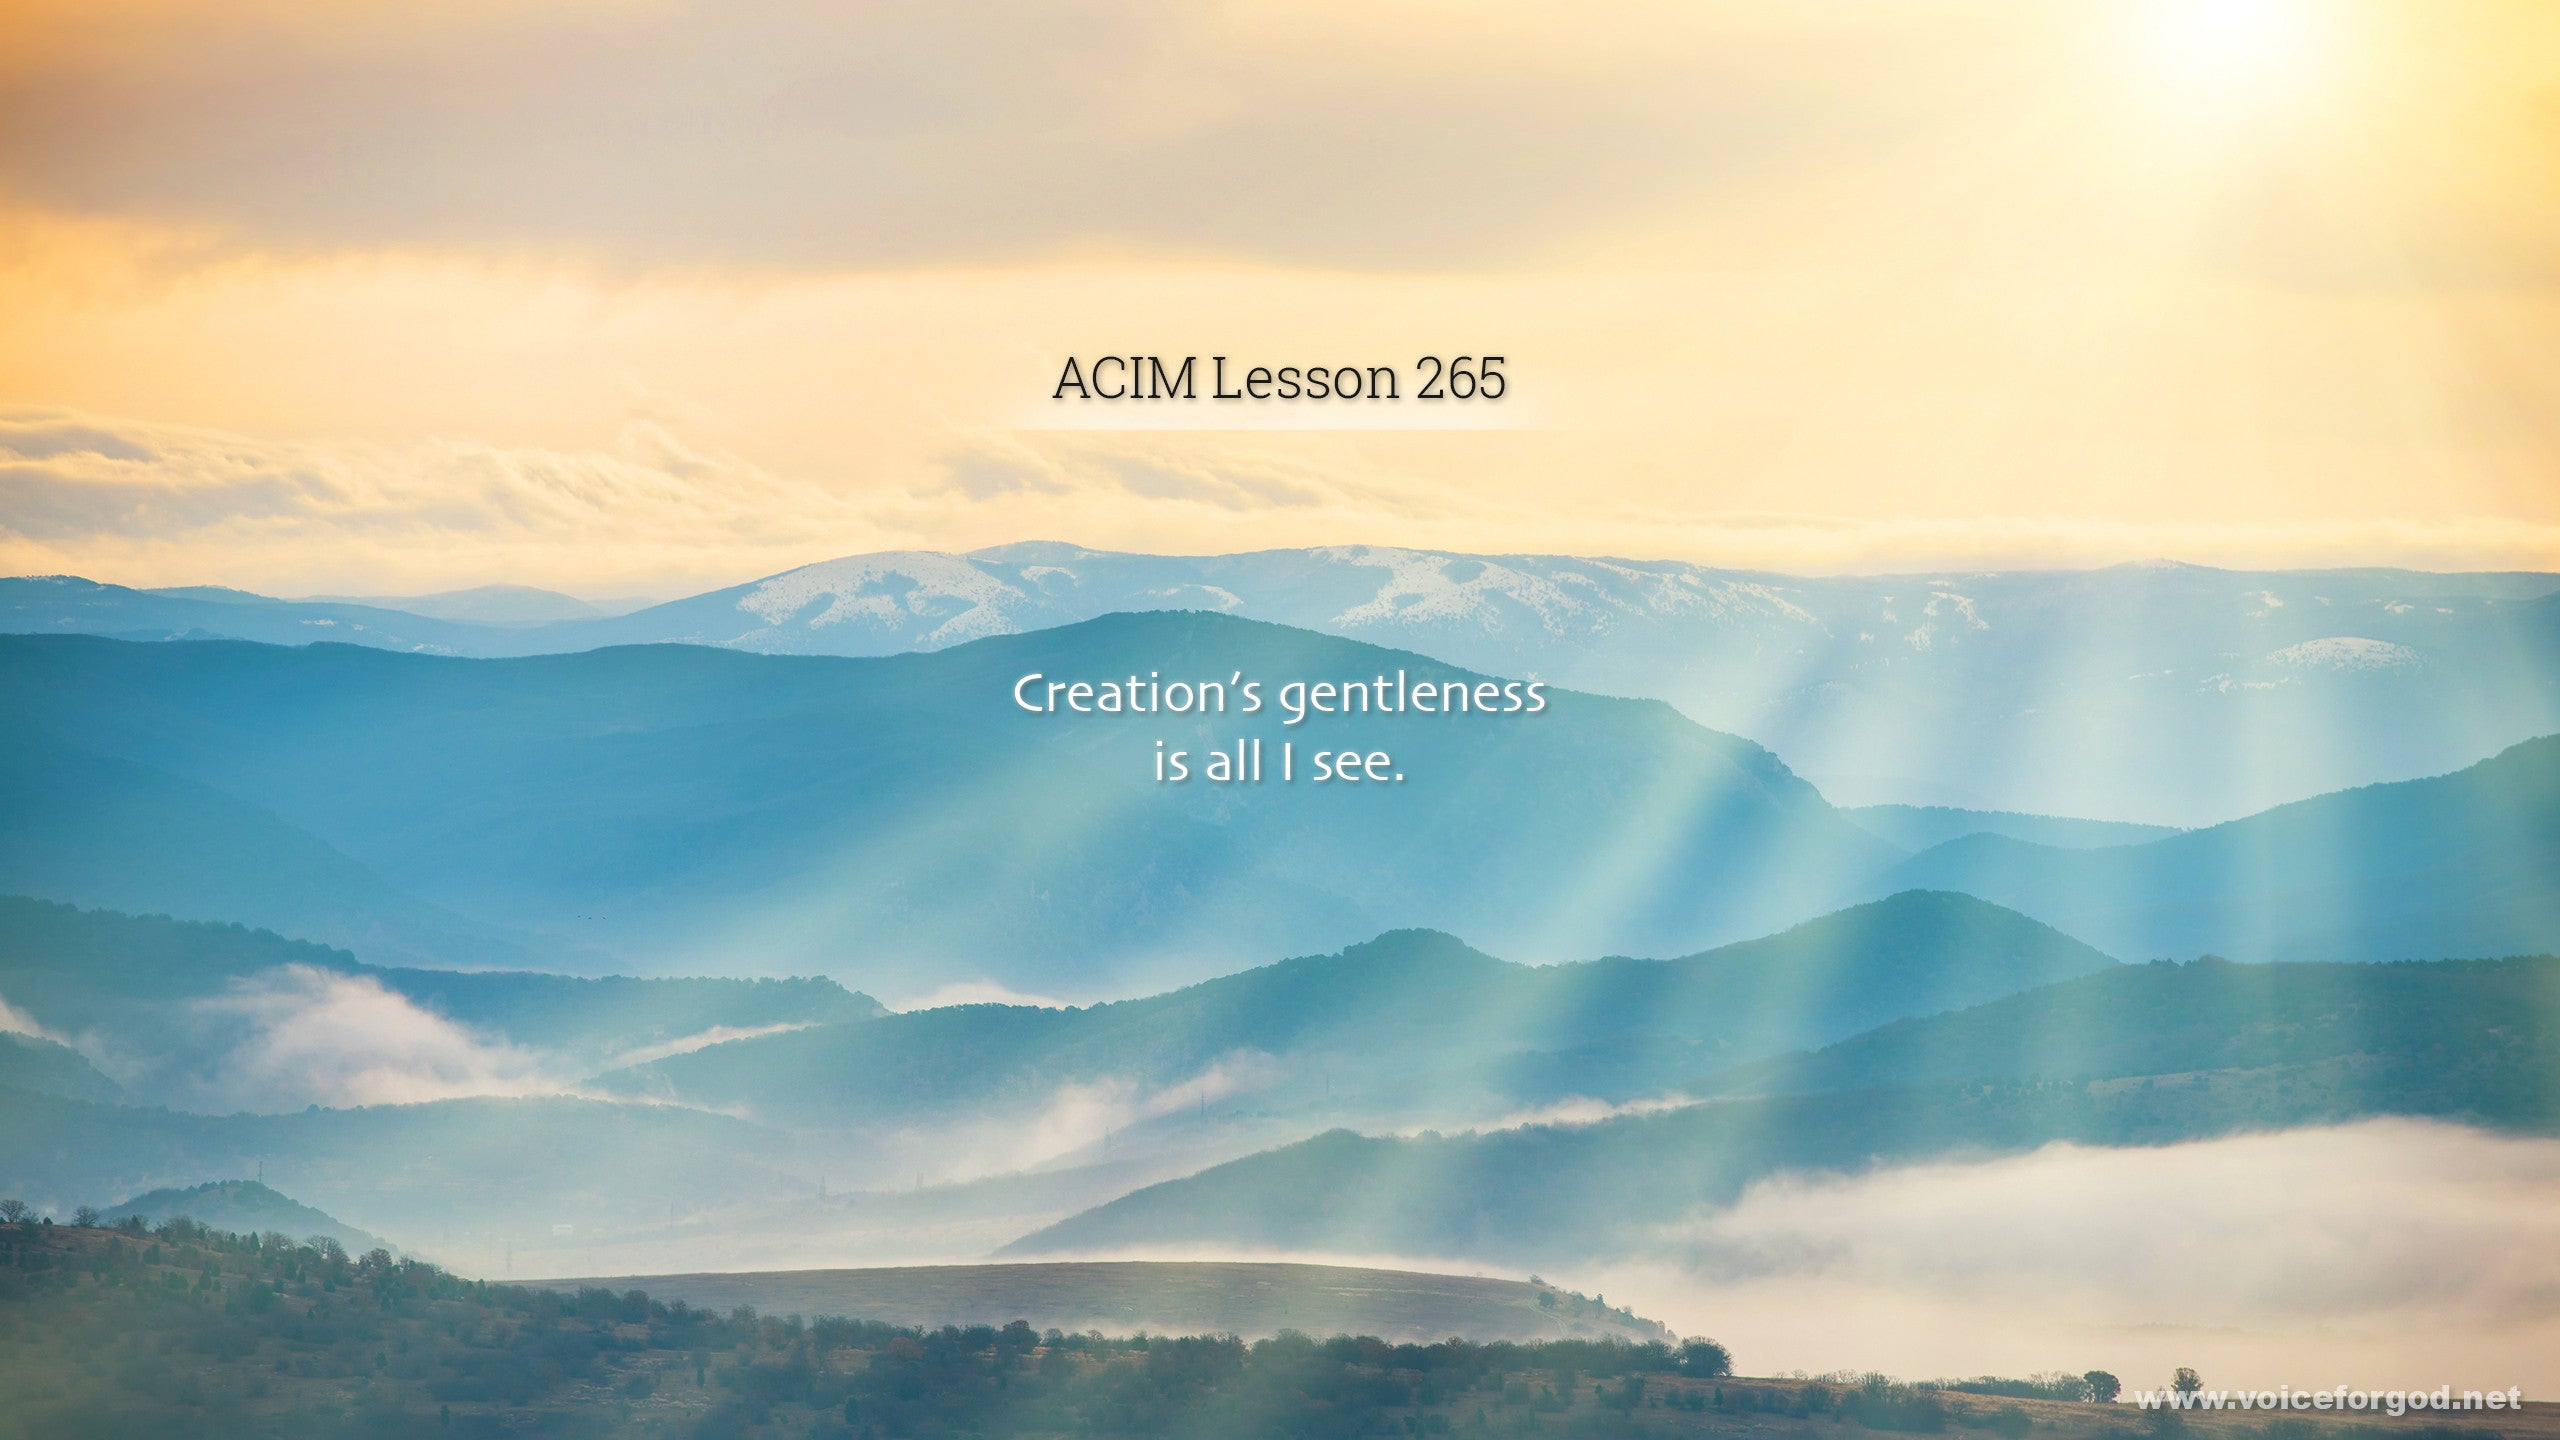 ACIM Lesson 265 - A Course in Miracles Workbook Lesson 265